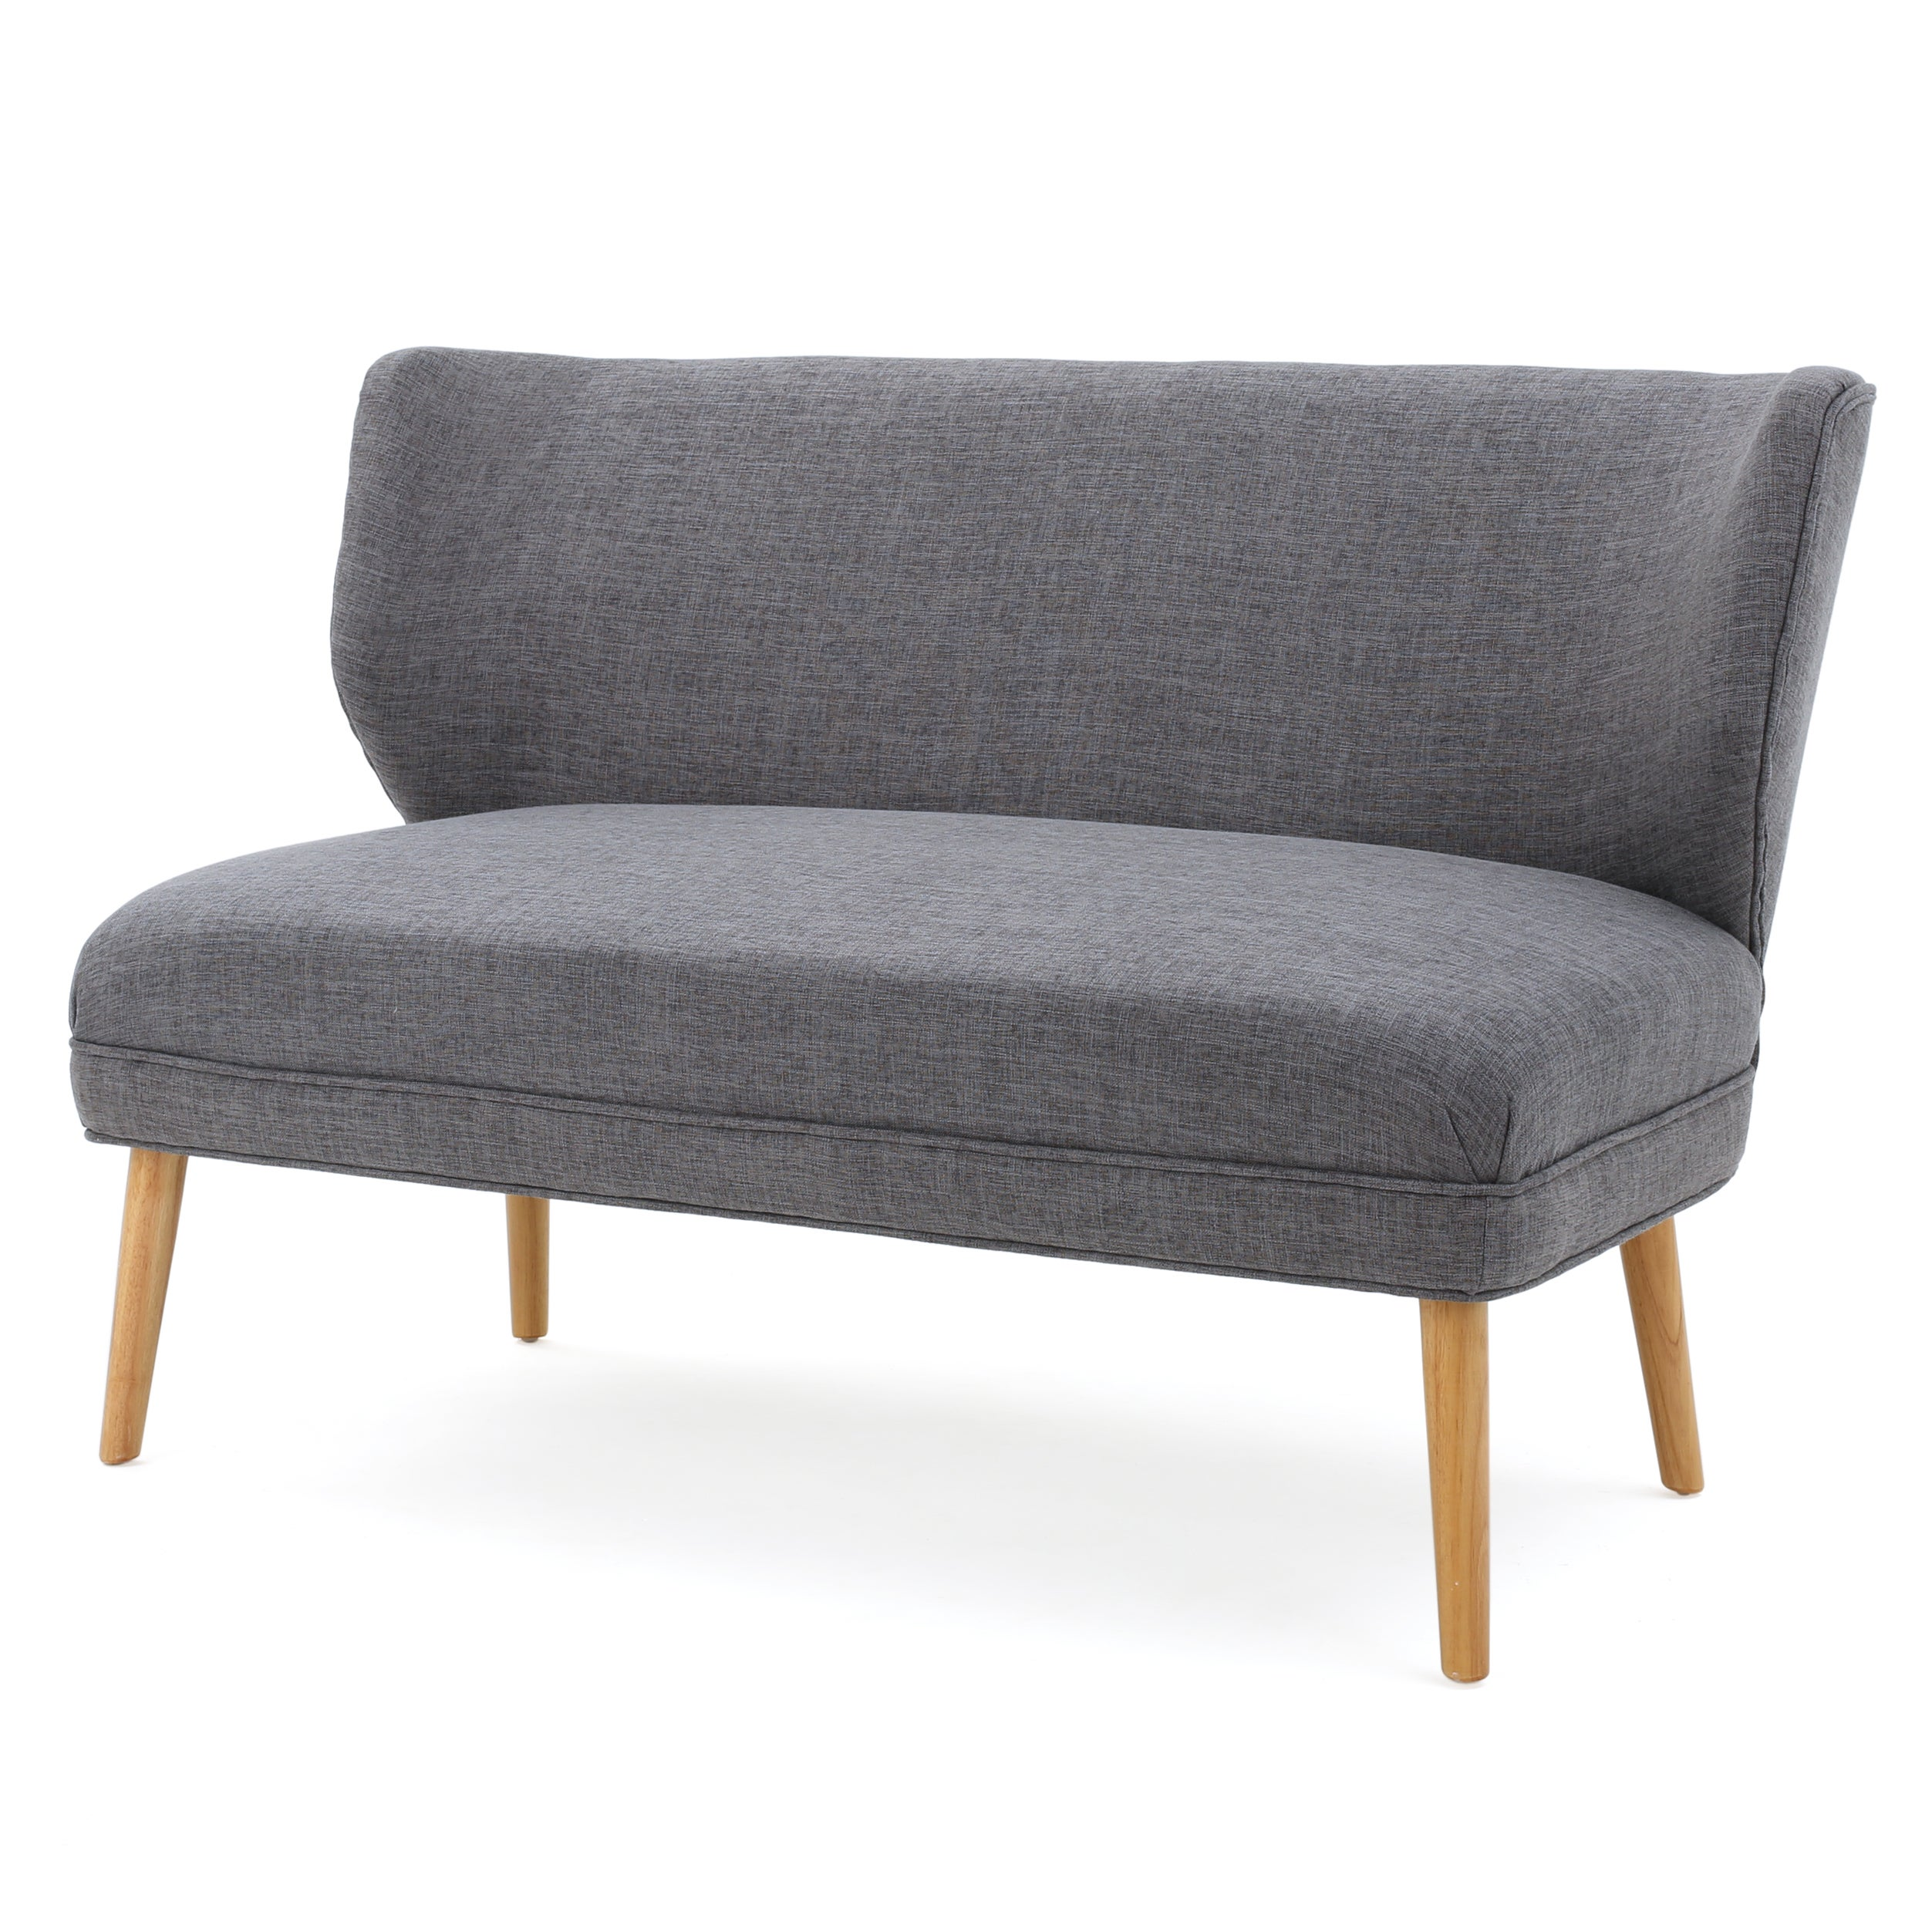 Astounding Ardine Mid Century Modern Fabric Loveseat Sofa Settee Light Grey Caraccident5 Cool Chair Designs And Ideas Caraccident5Info